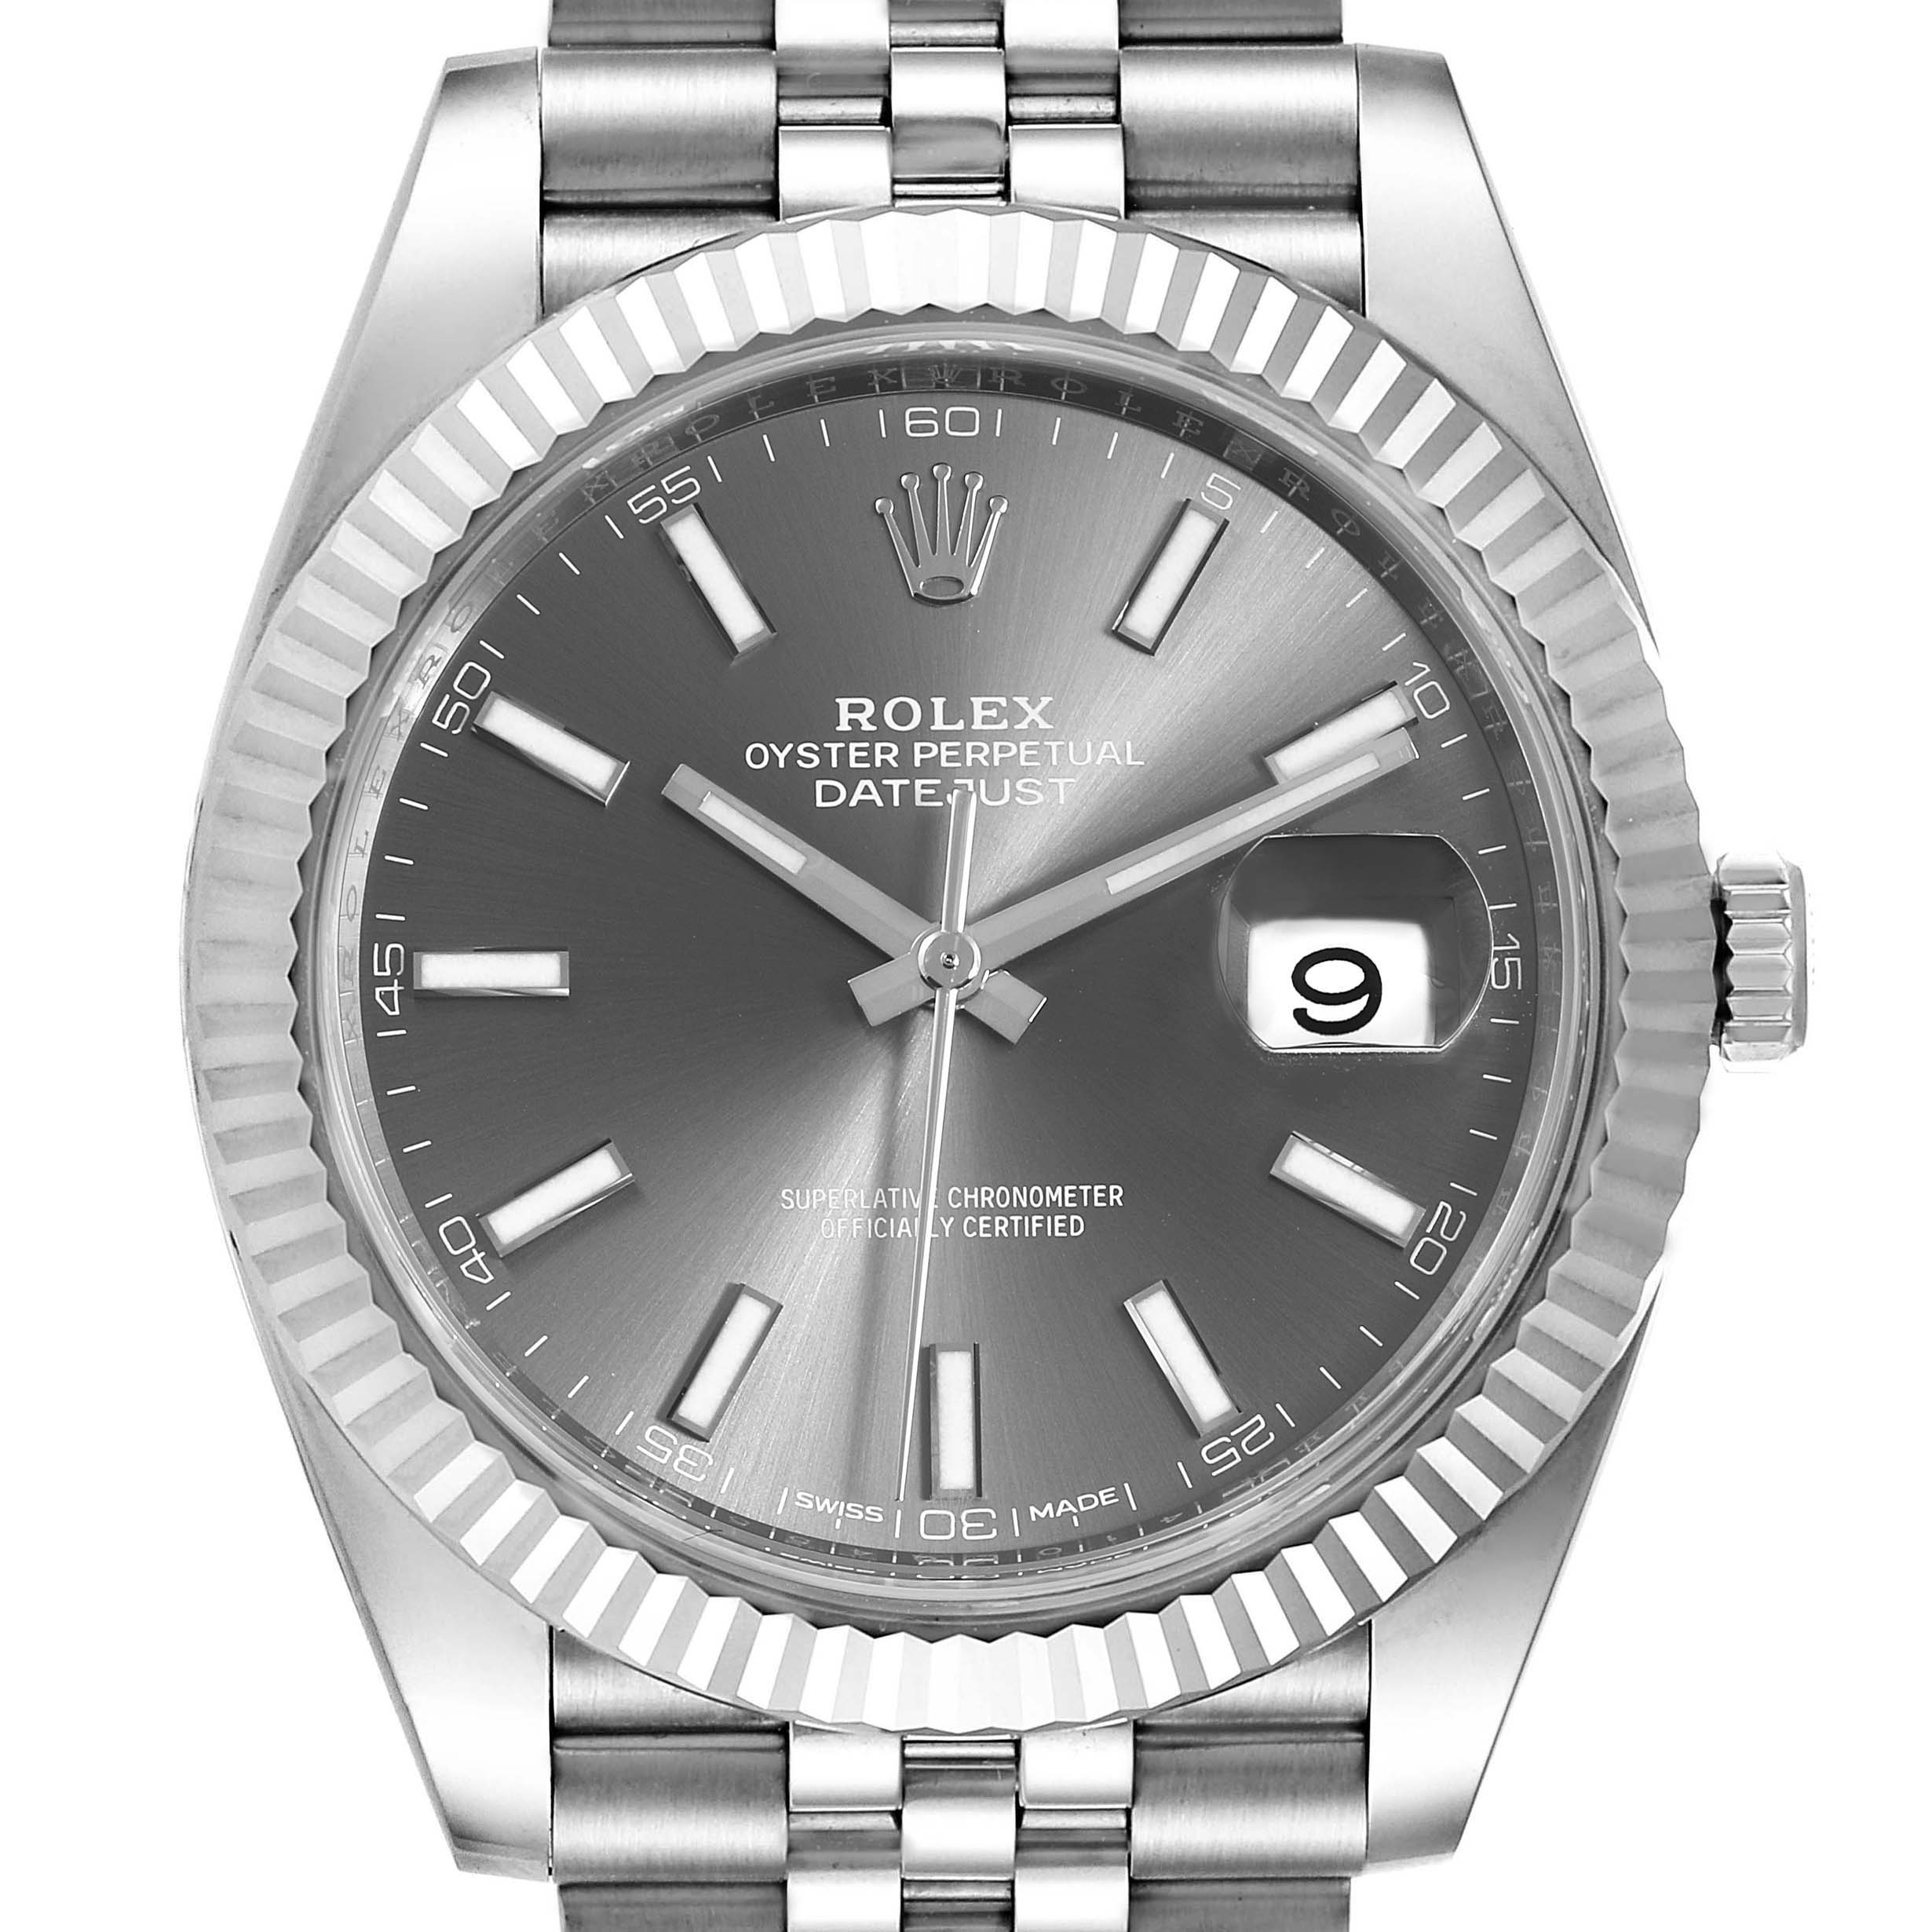 Photo of Rolex Datejust 41 Steel White Gold Rhodium Dial Watch 126334 Box Card